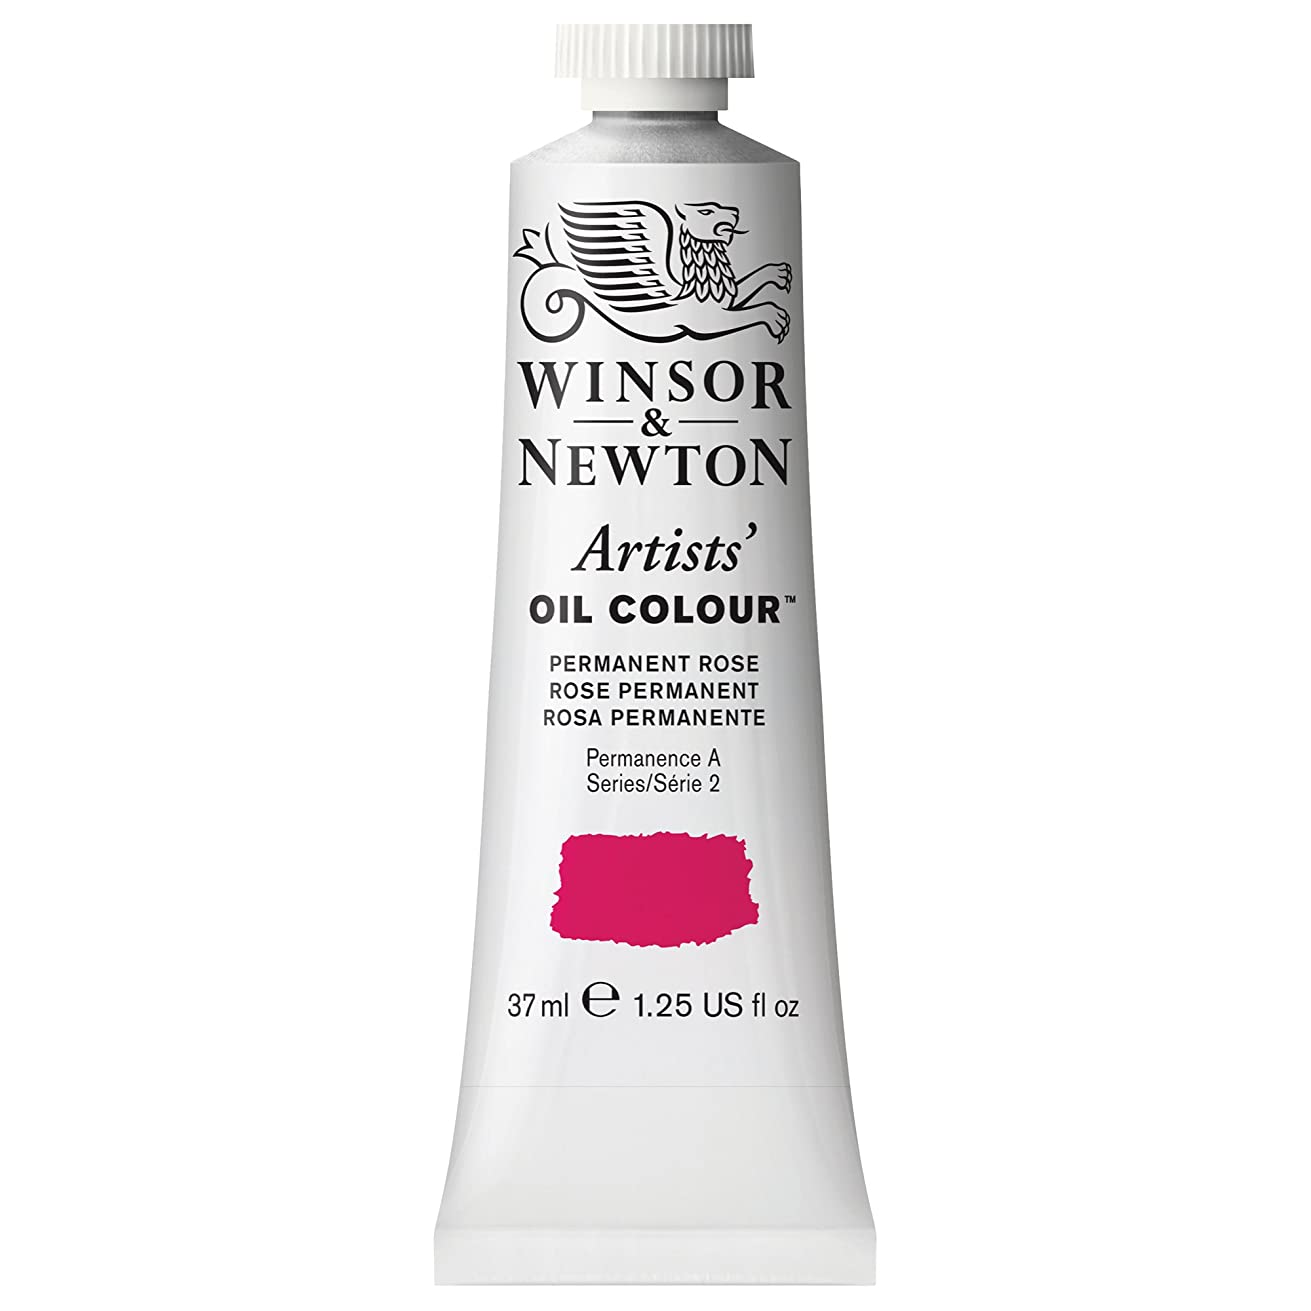 Winsor & Newton Artists' Oil Colour Paint, 37ml Tube, Permanent Rose